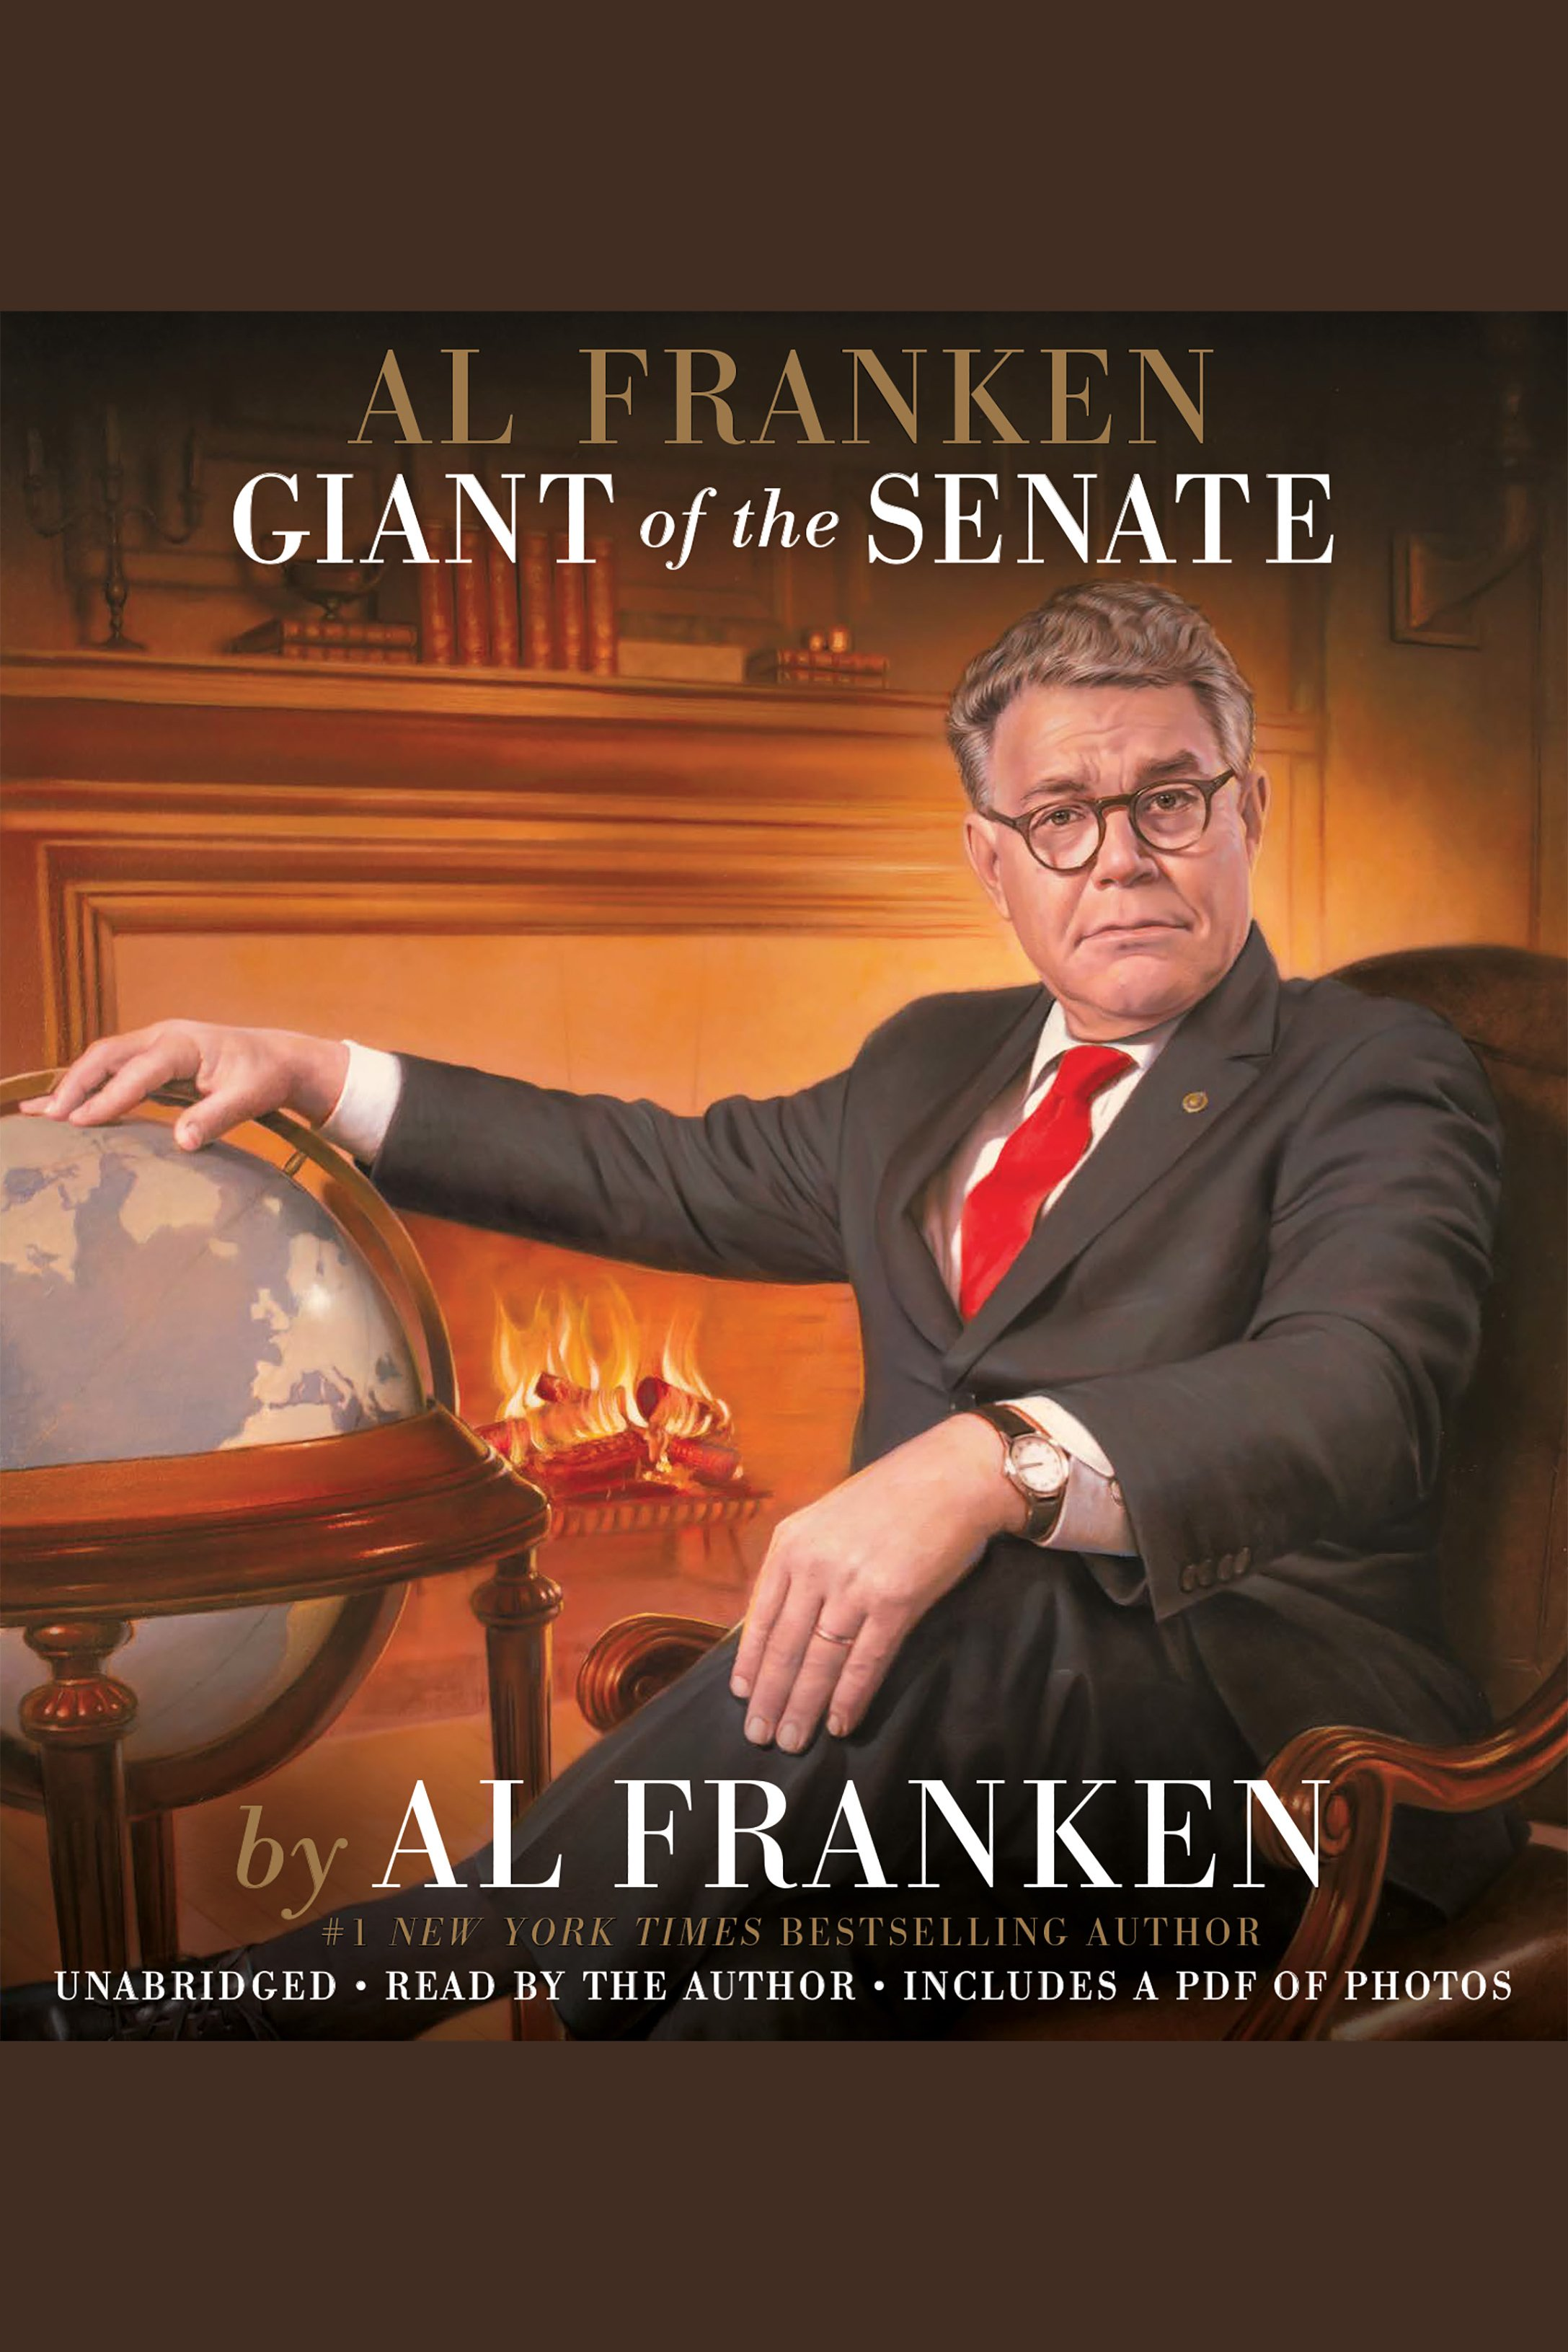 Al Franken, giant of the Senate [AudioEbook]